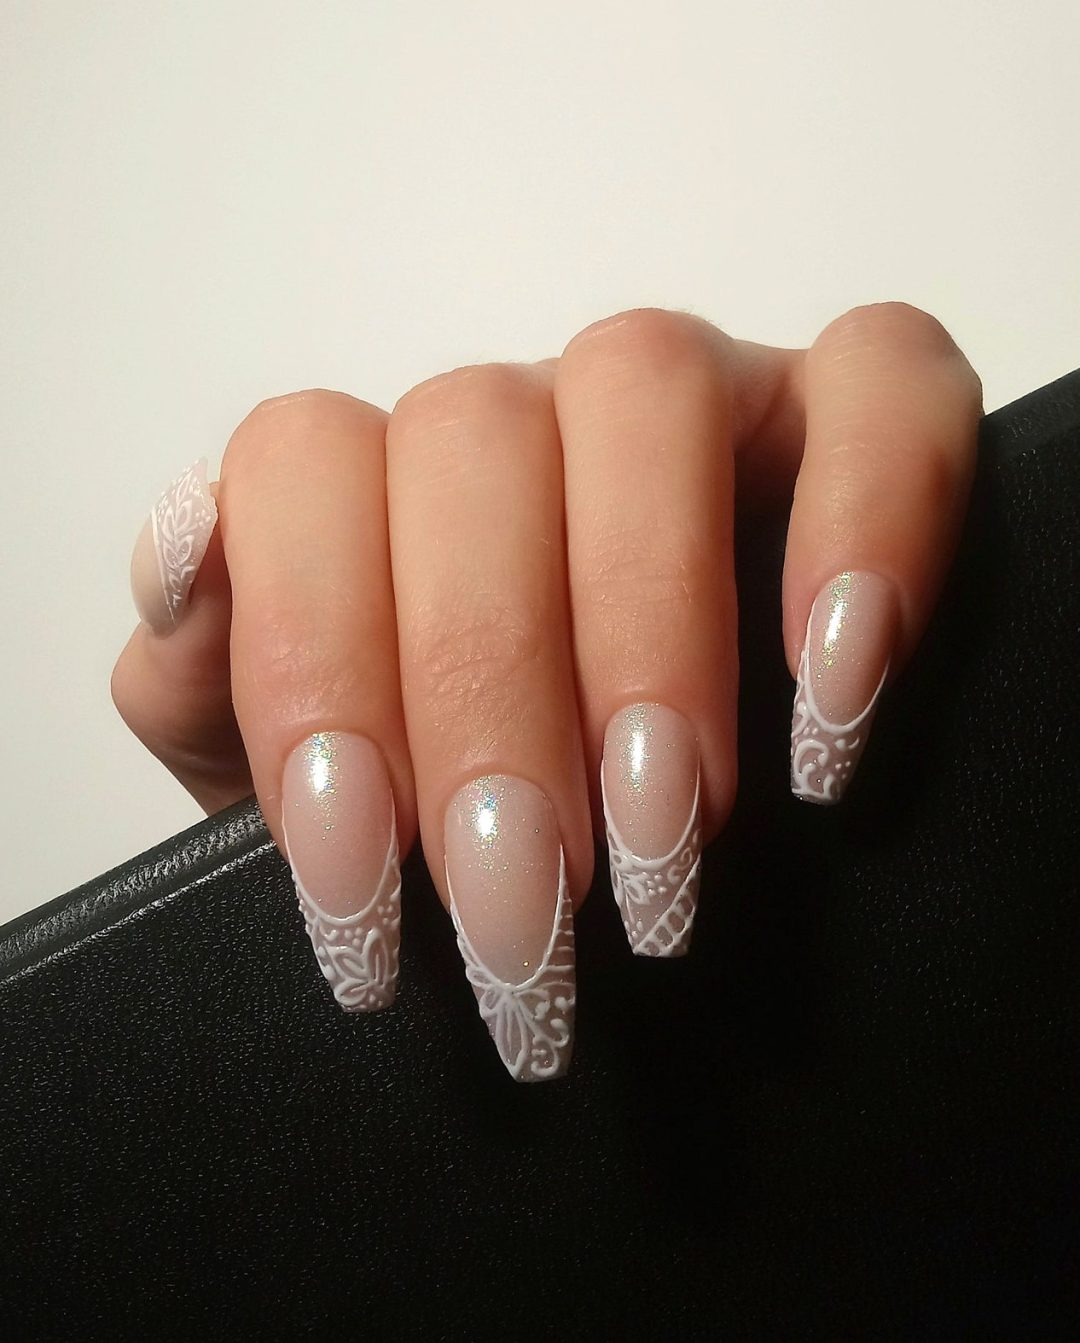 Cute white lace wedding nails with French tips